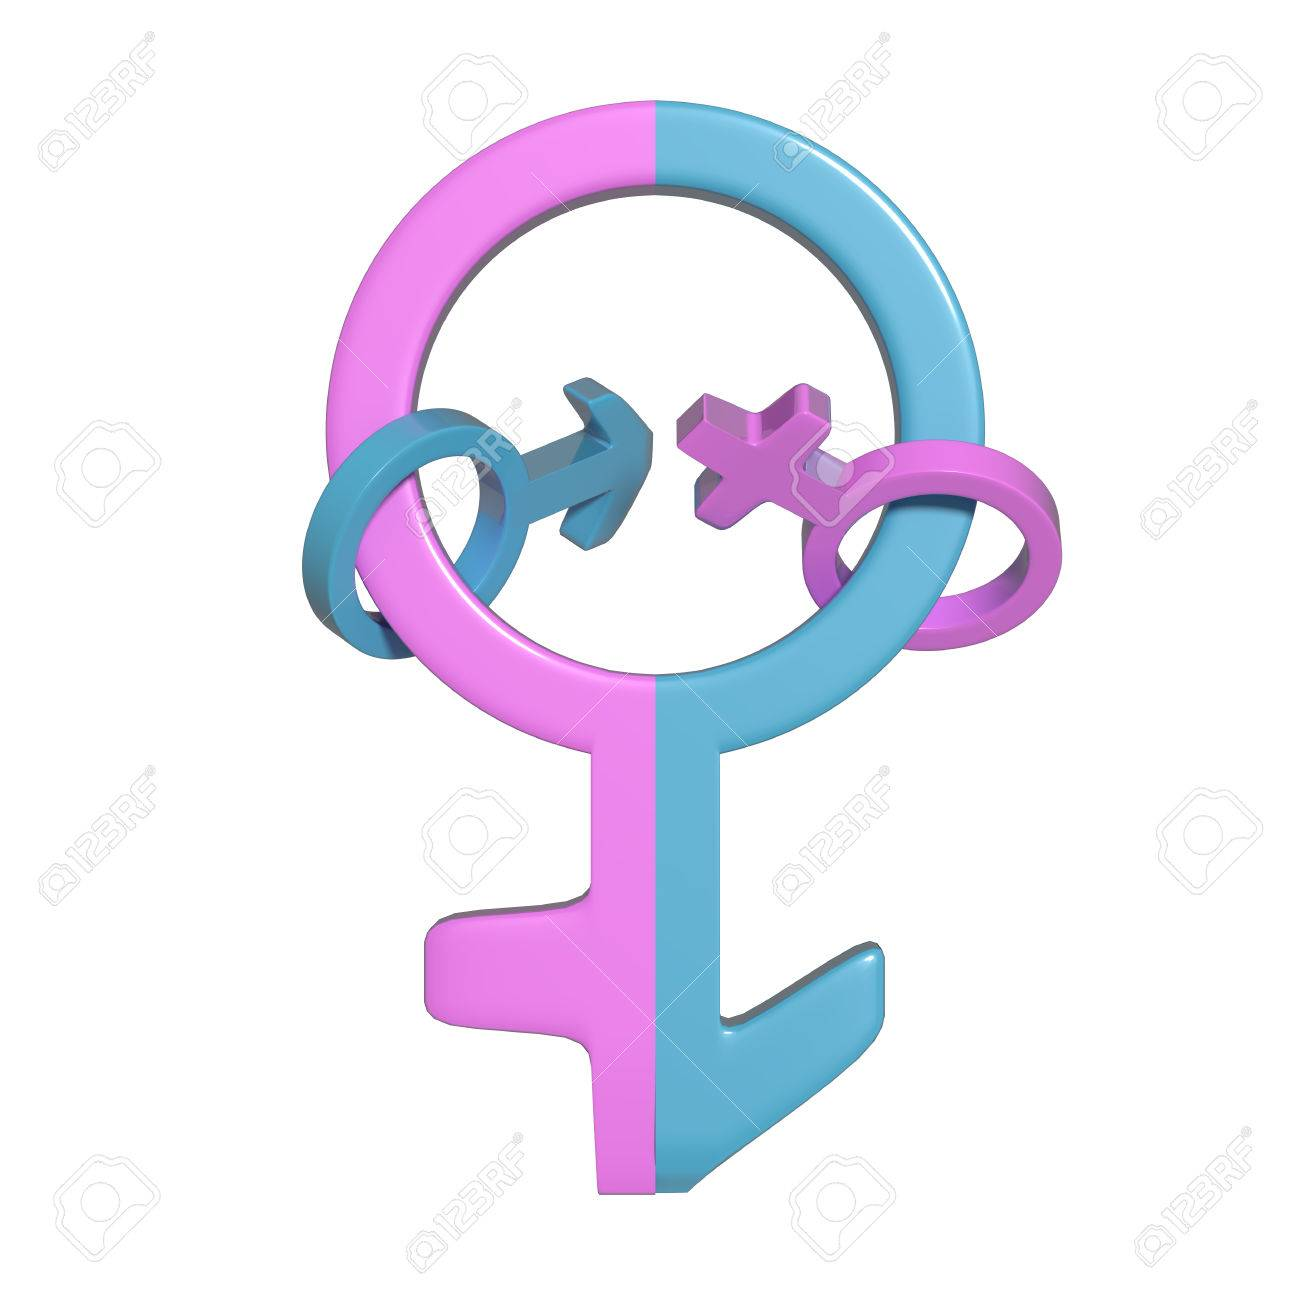 3d Rendering Of Pink And Blue Interflown Symbol Of Men And Women